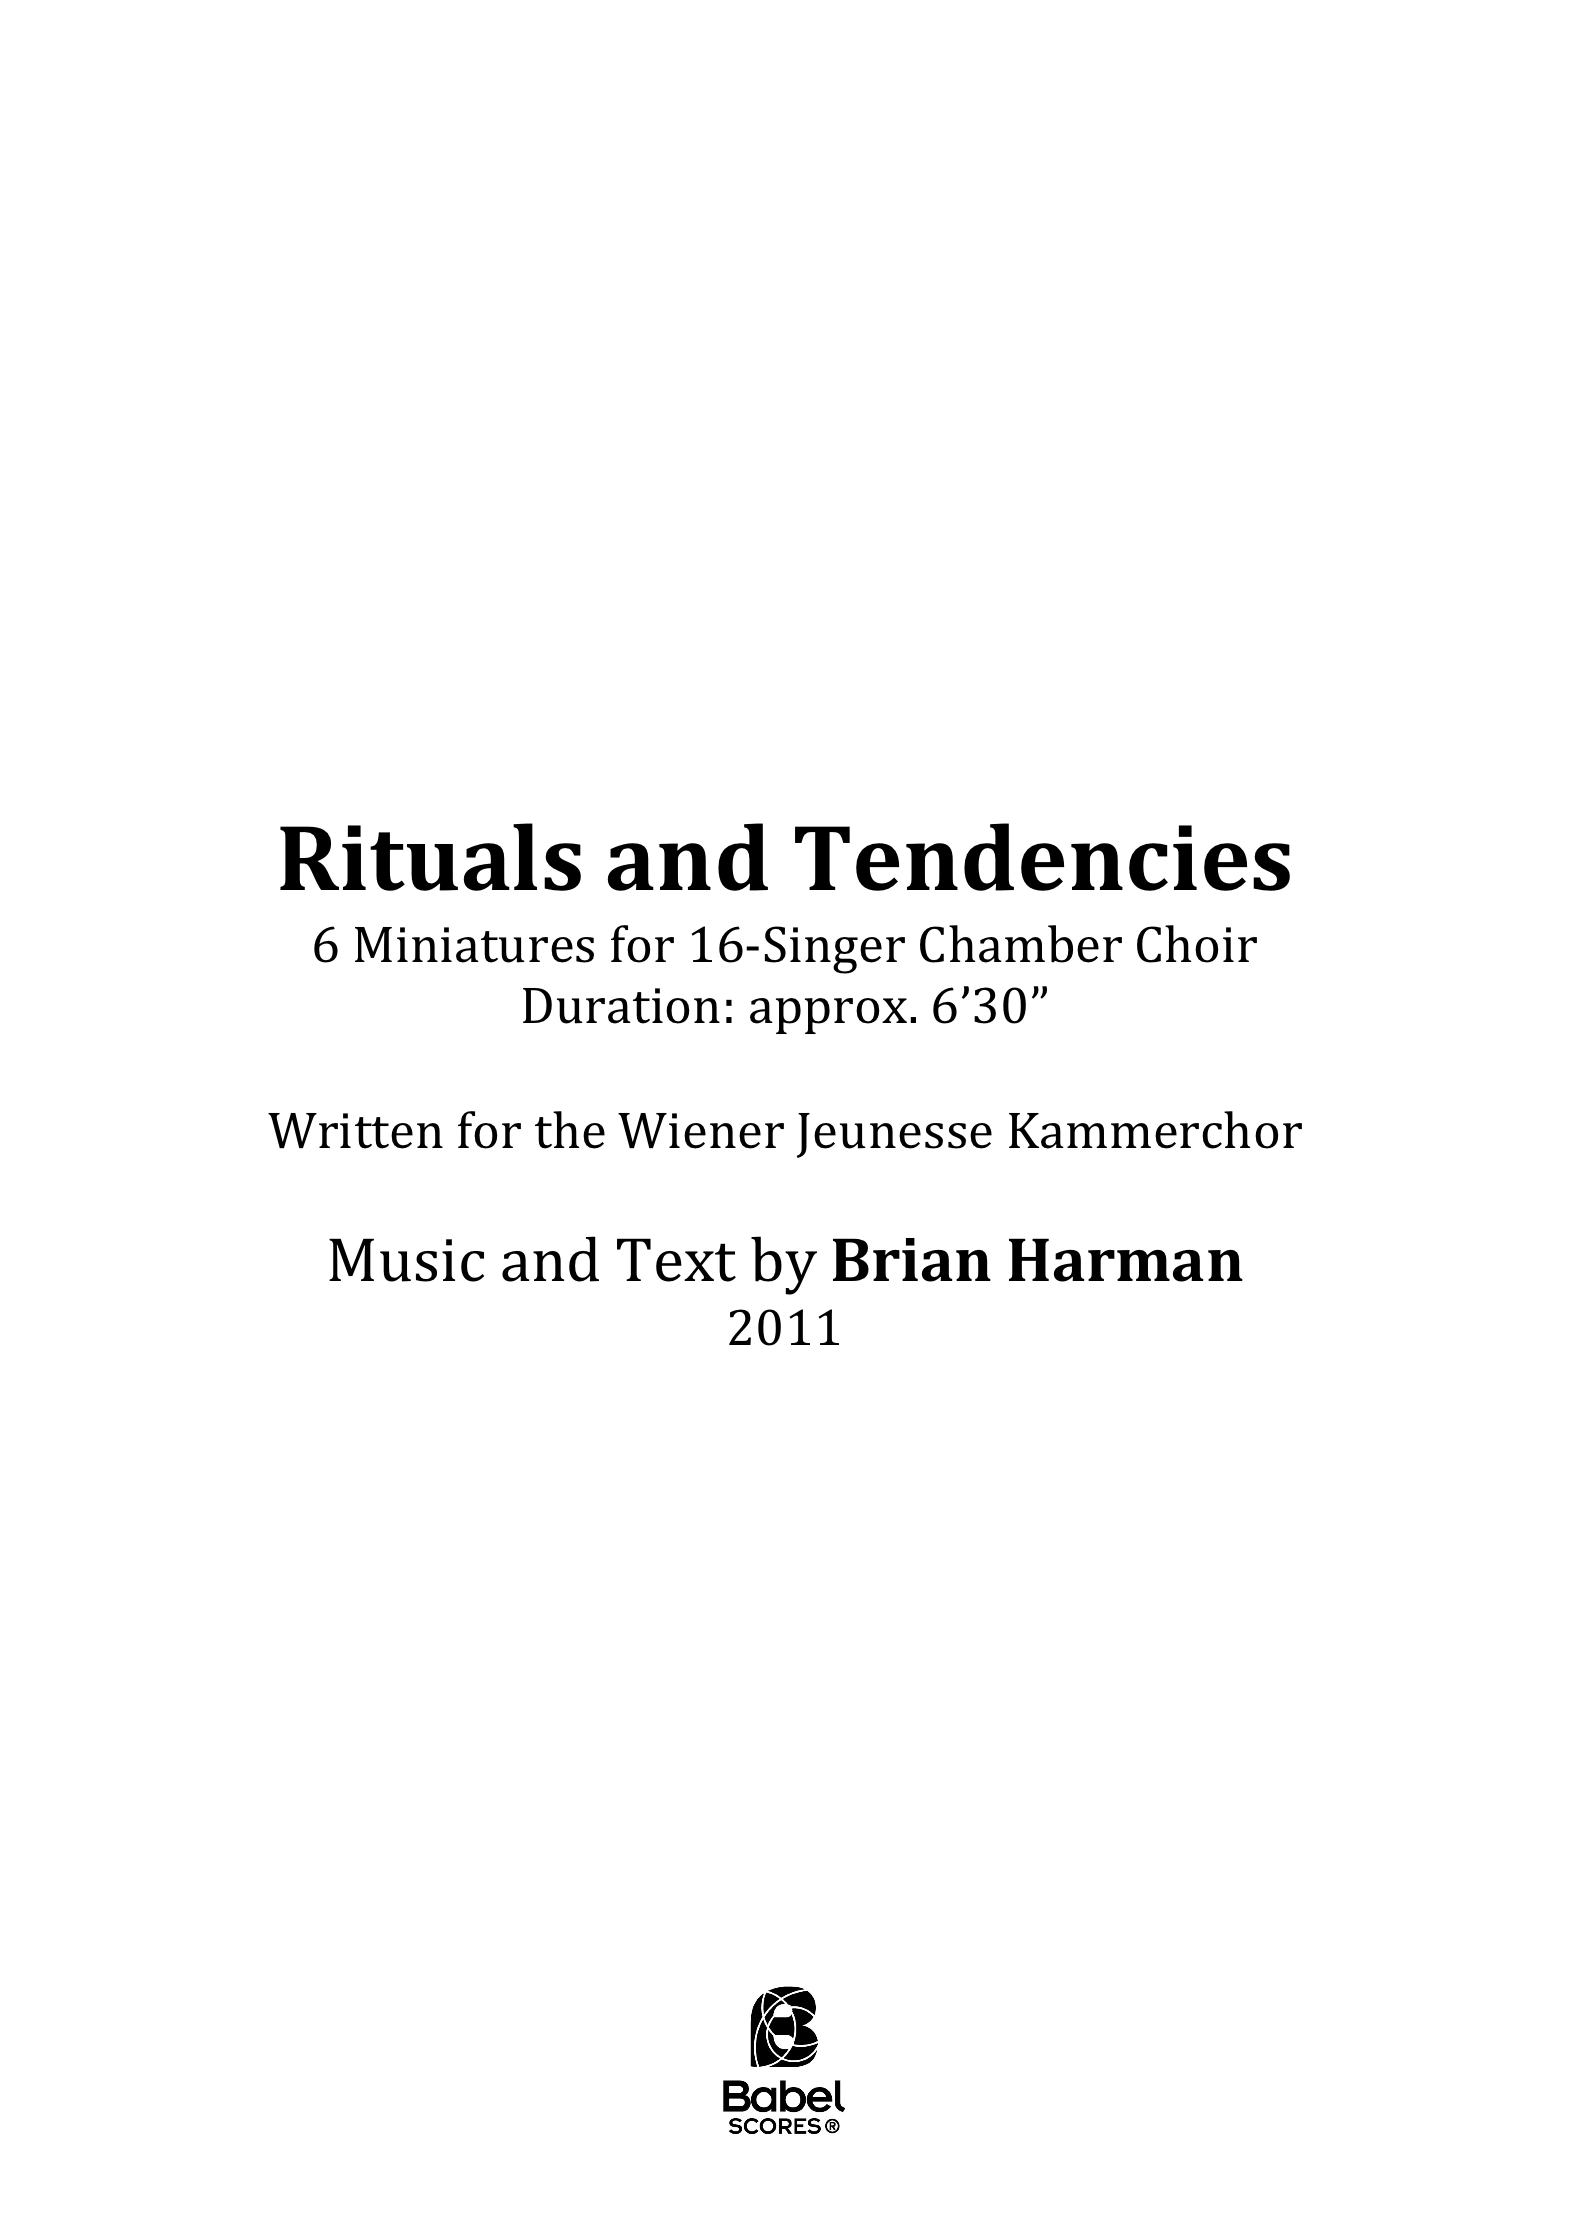 Rituals and Tendencies Complete A4 z